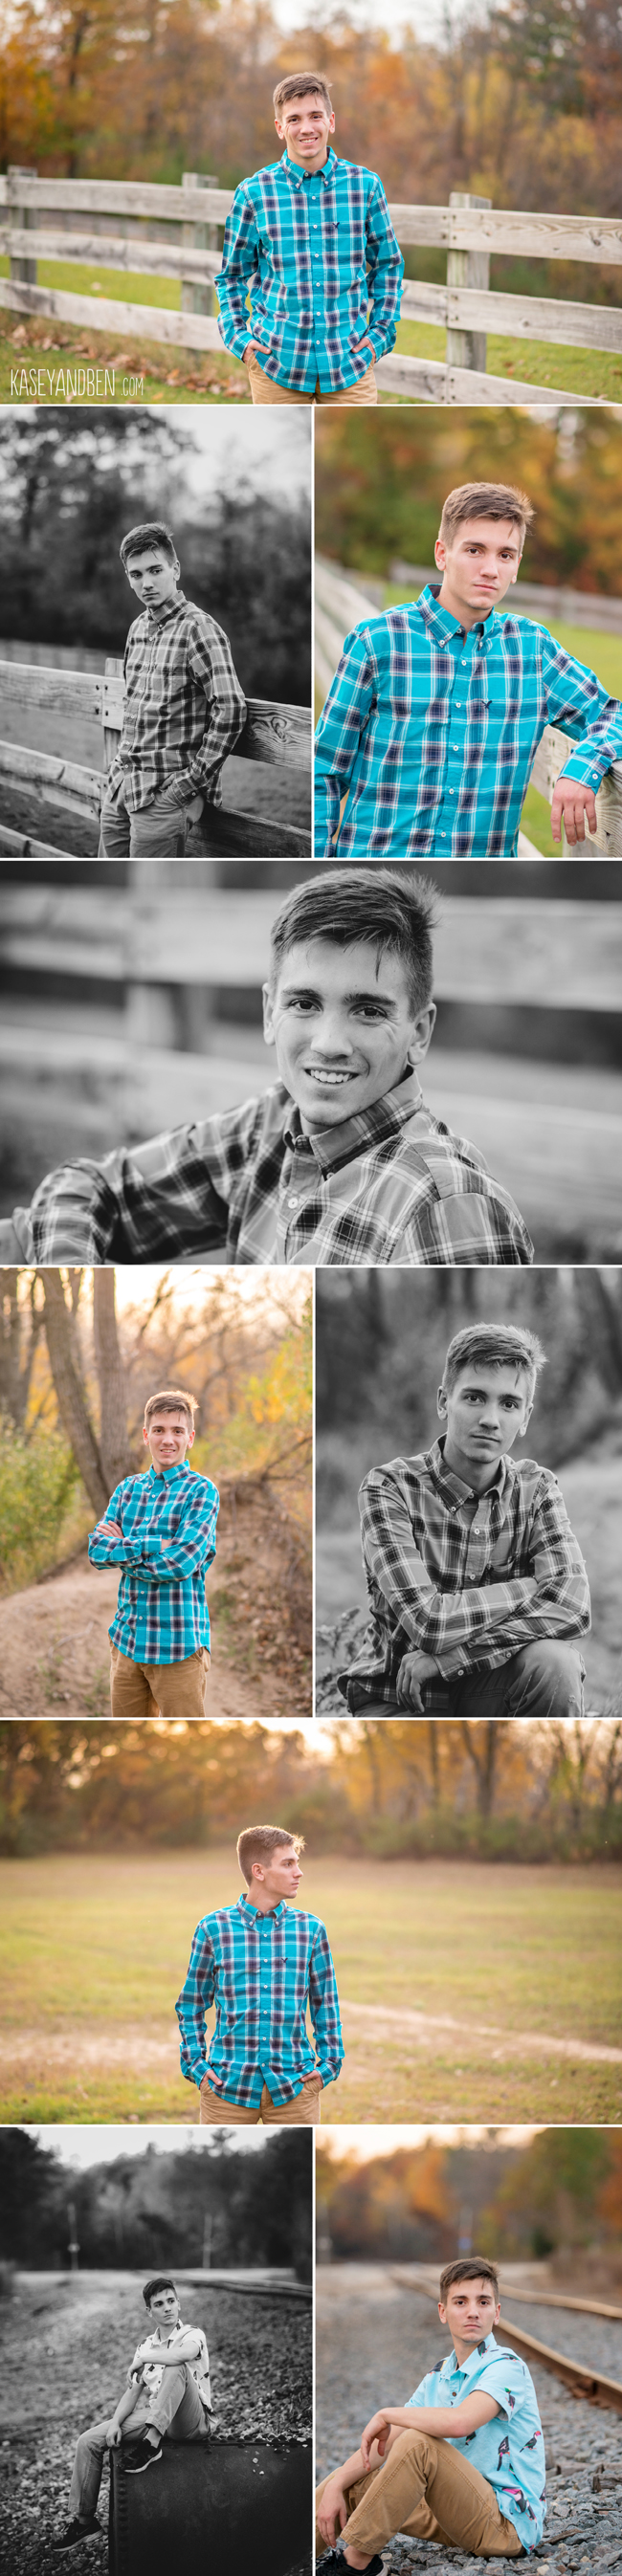 Green-Bay-Senior-Photos-Bairds-Creek-Photography-High-School-East-Photographers-Kasey-and-Ben